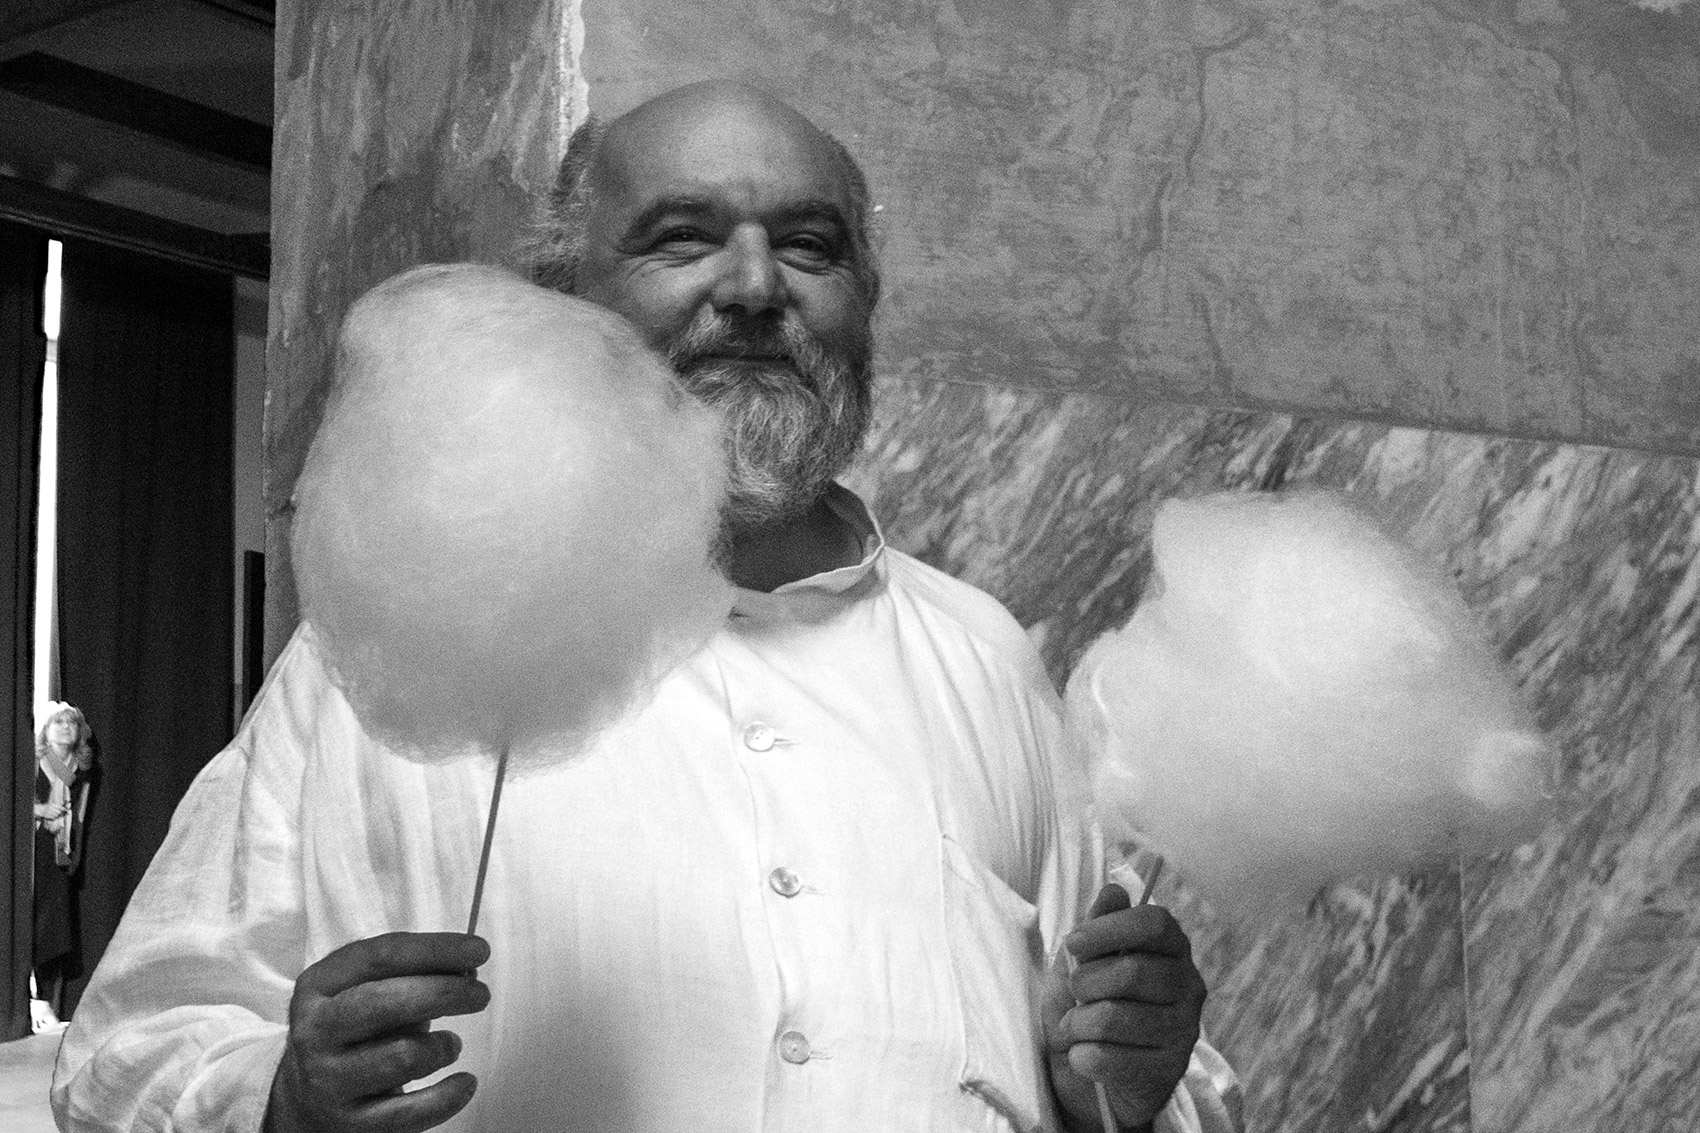 The cotton candy man